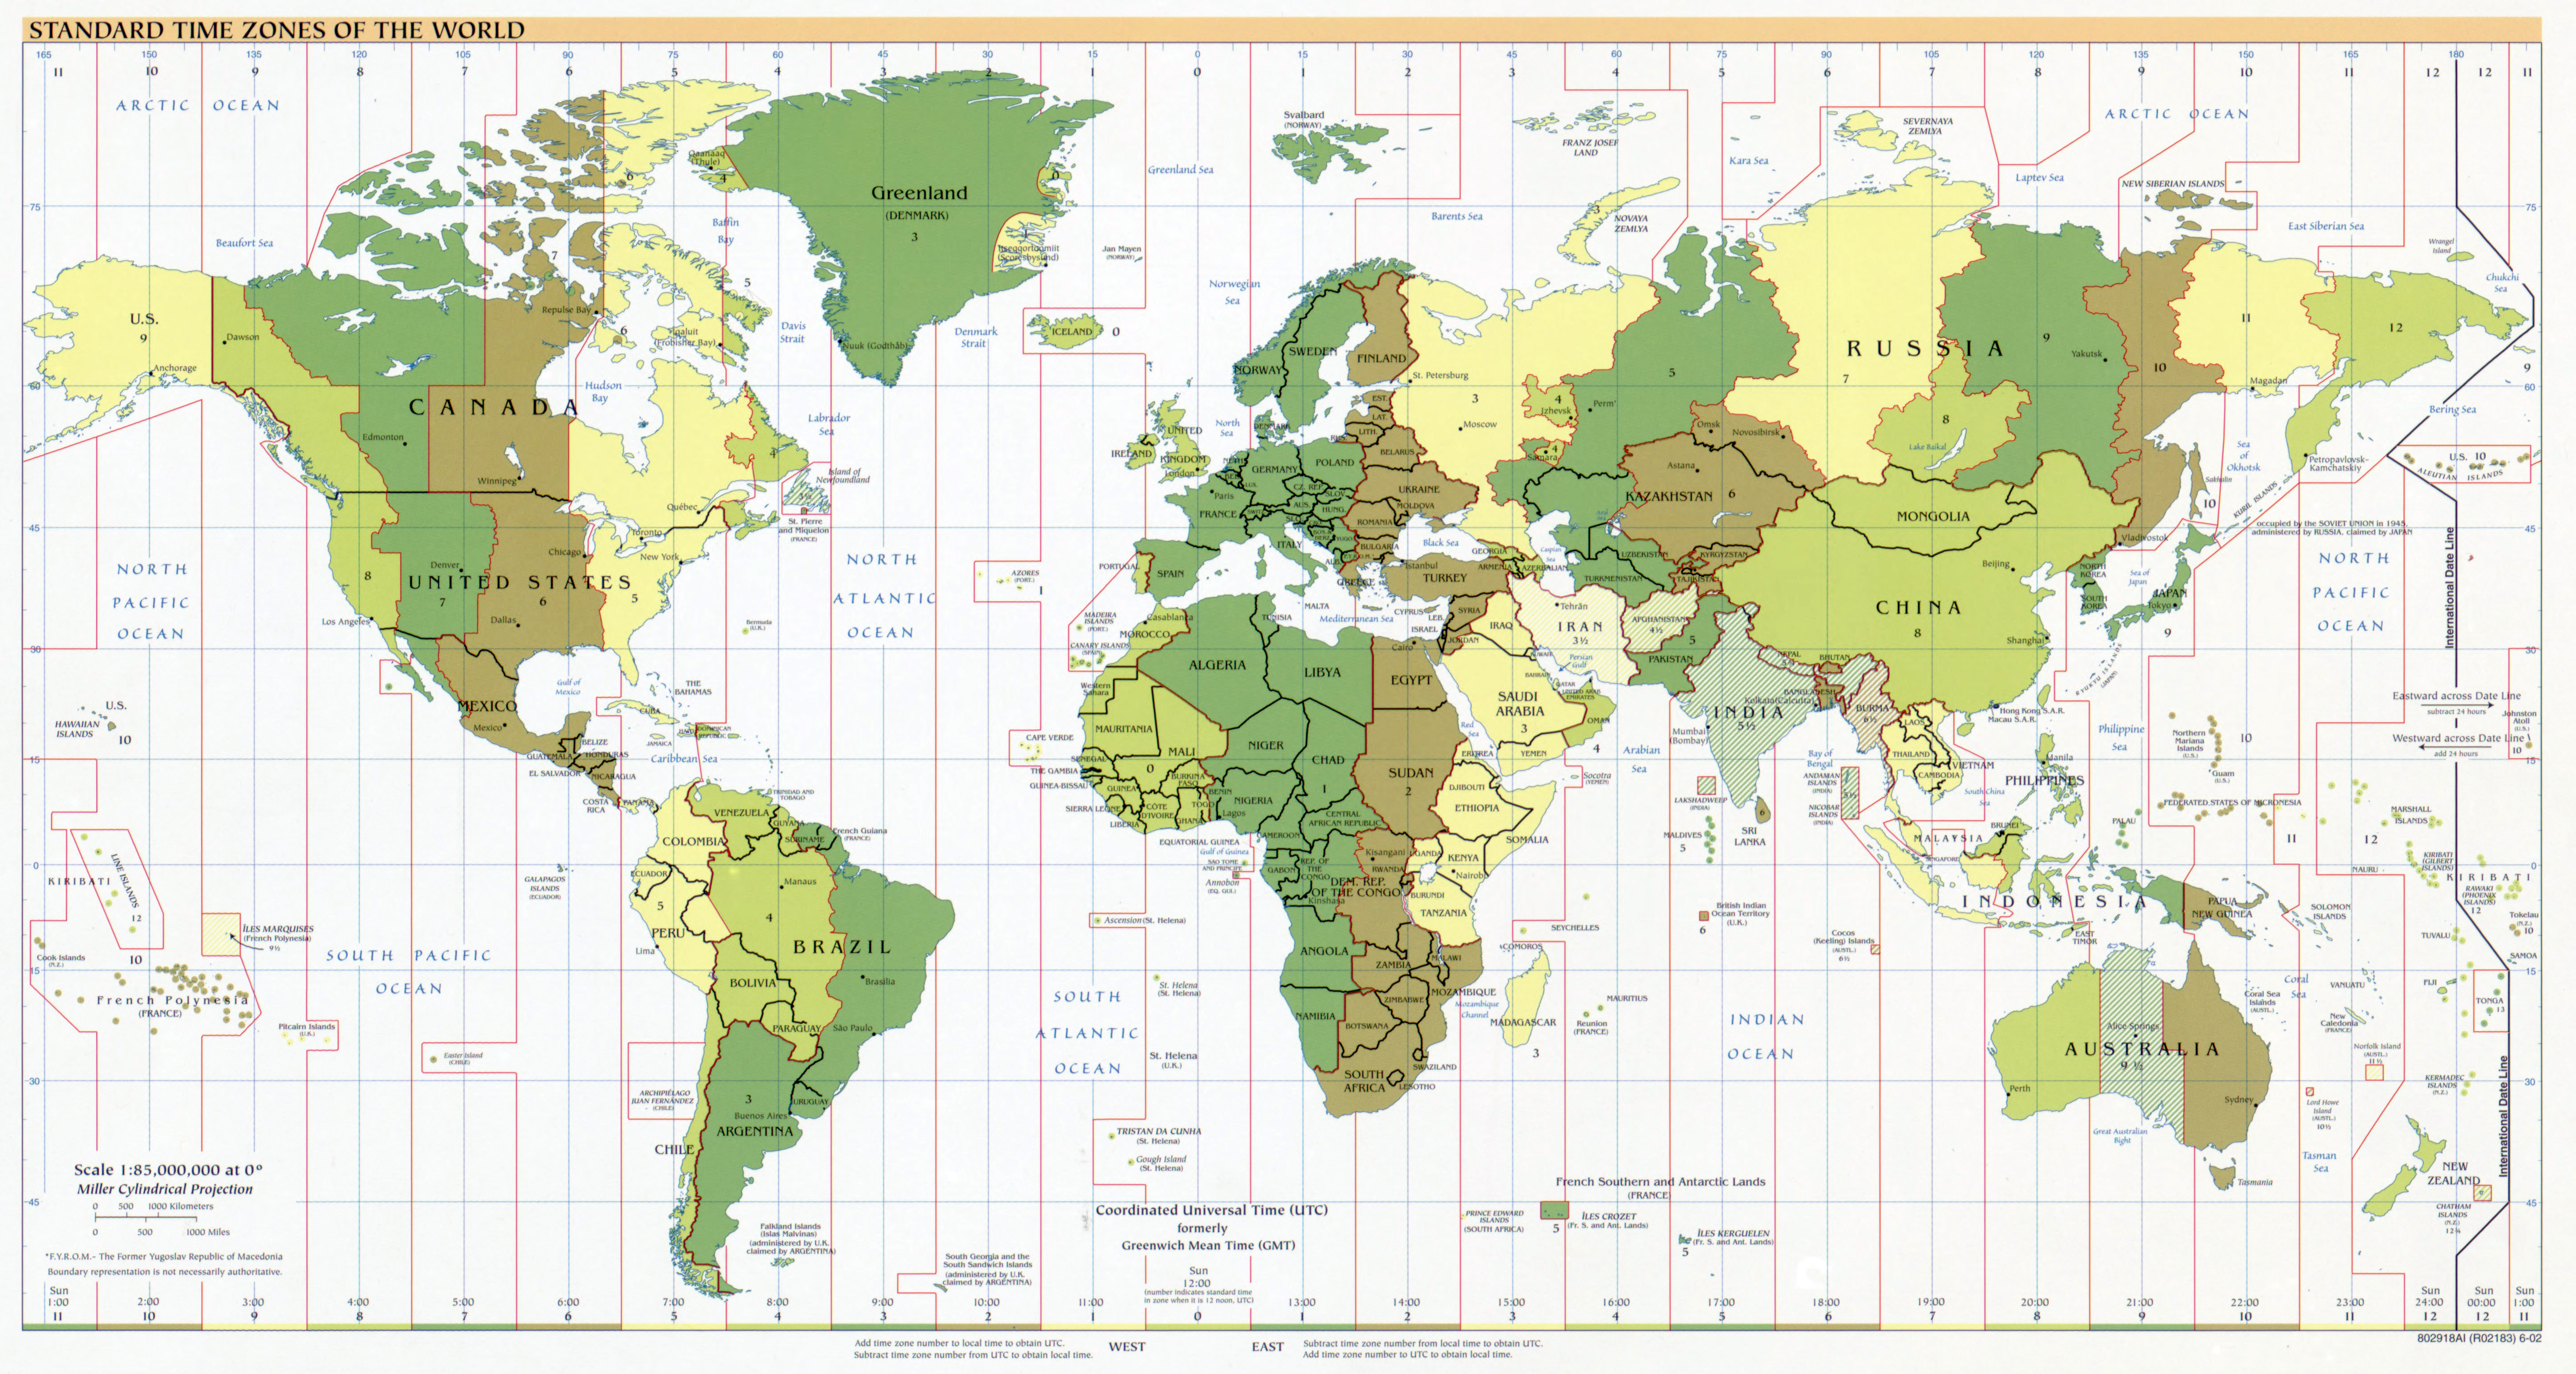 Large scale standard time zones of the world map 2002 time large scale standard time zones of the world map 2002 gumiabroncs Gallery